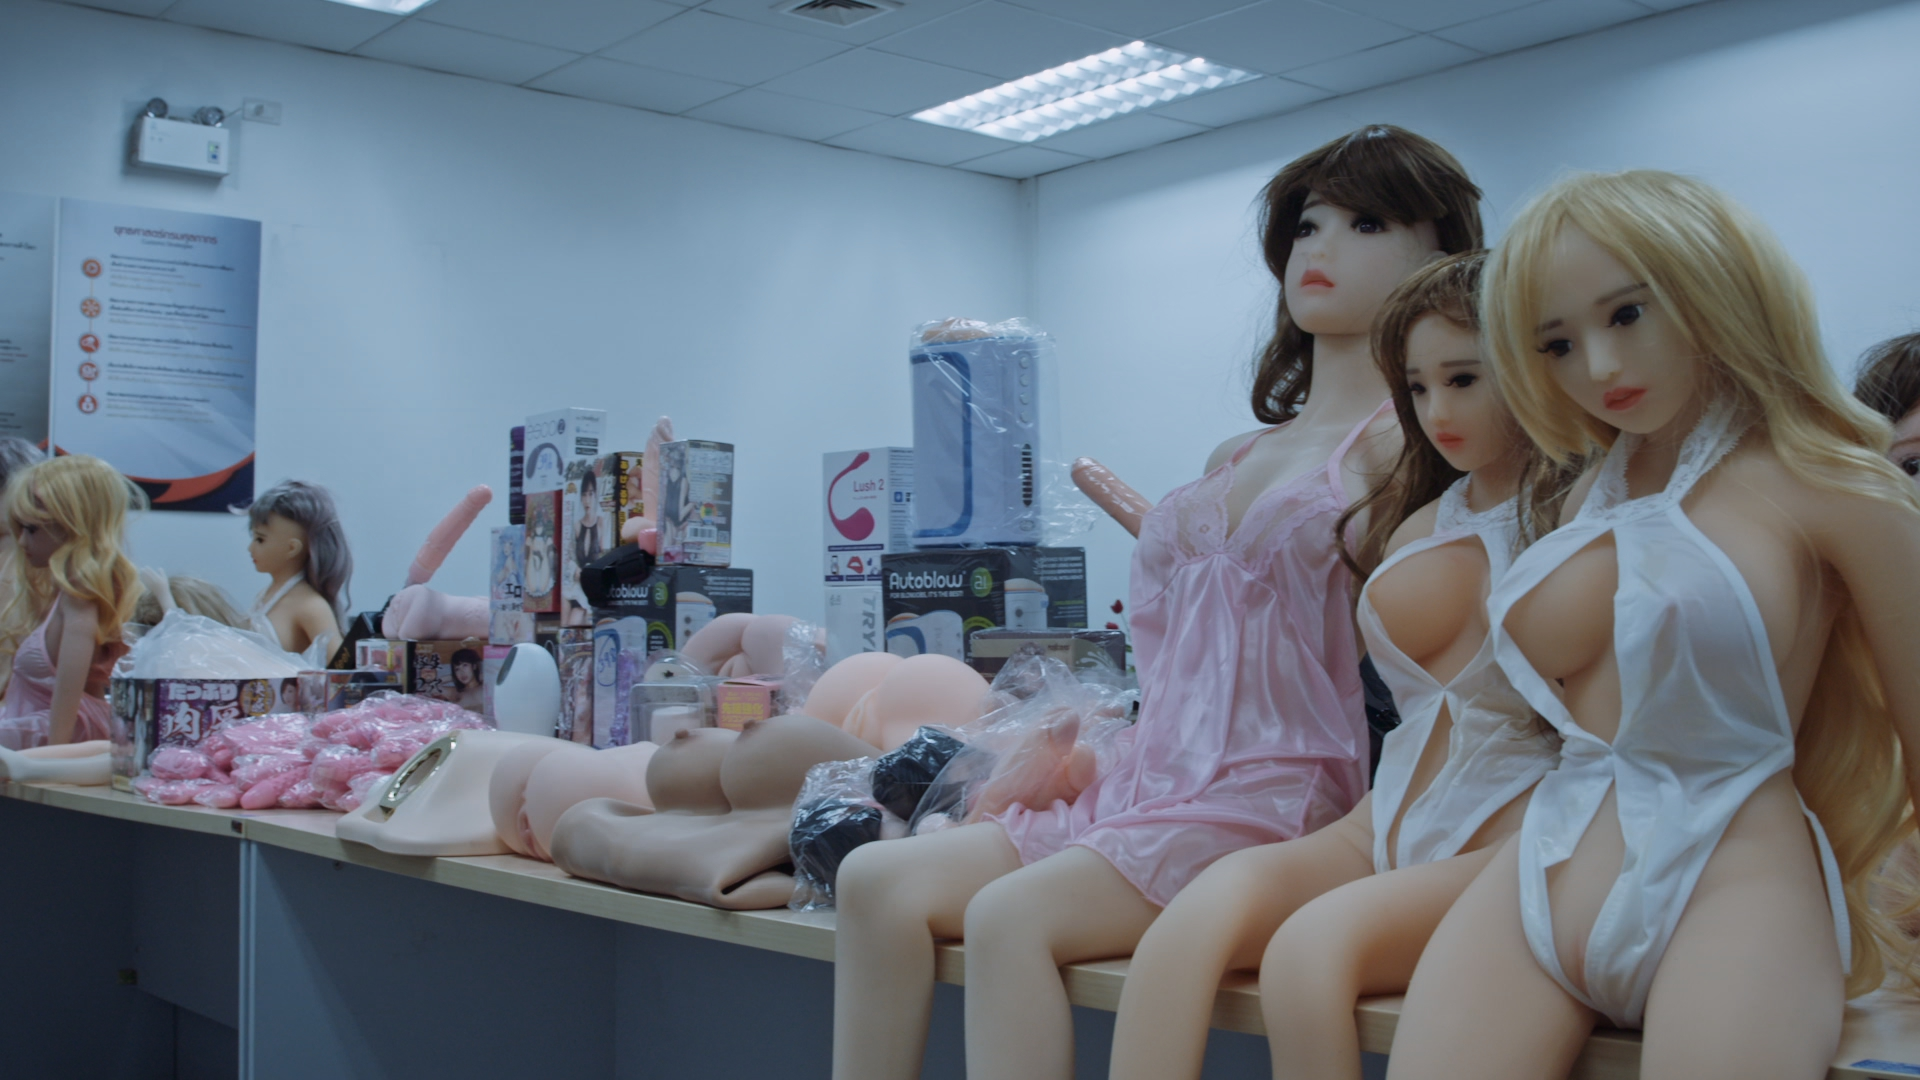 Thailand's Illegal Sex Toy Market Is Booming thumbnail